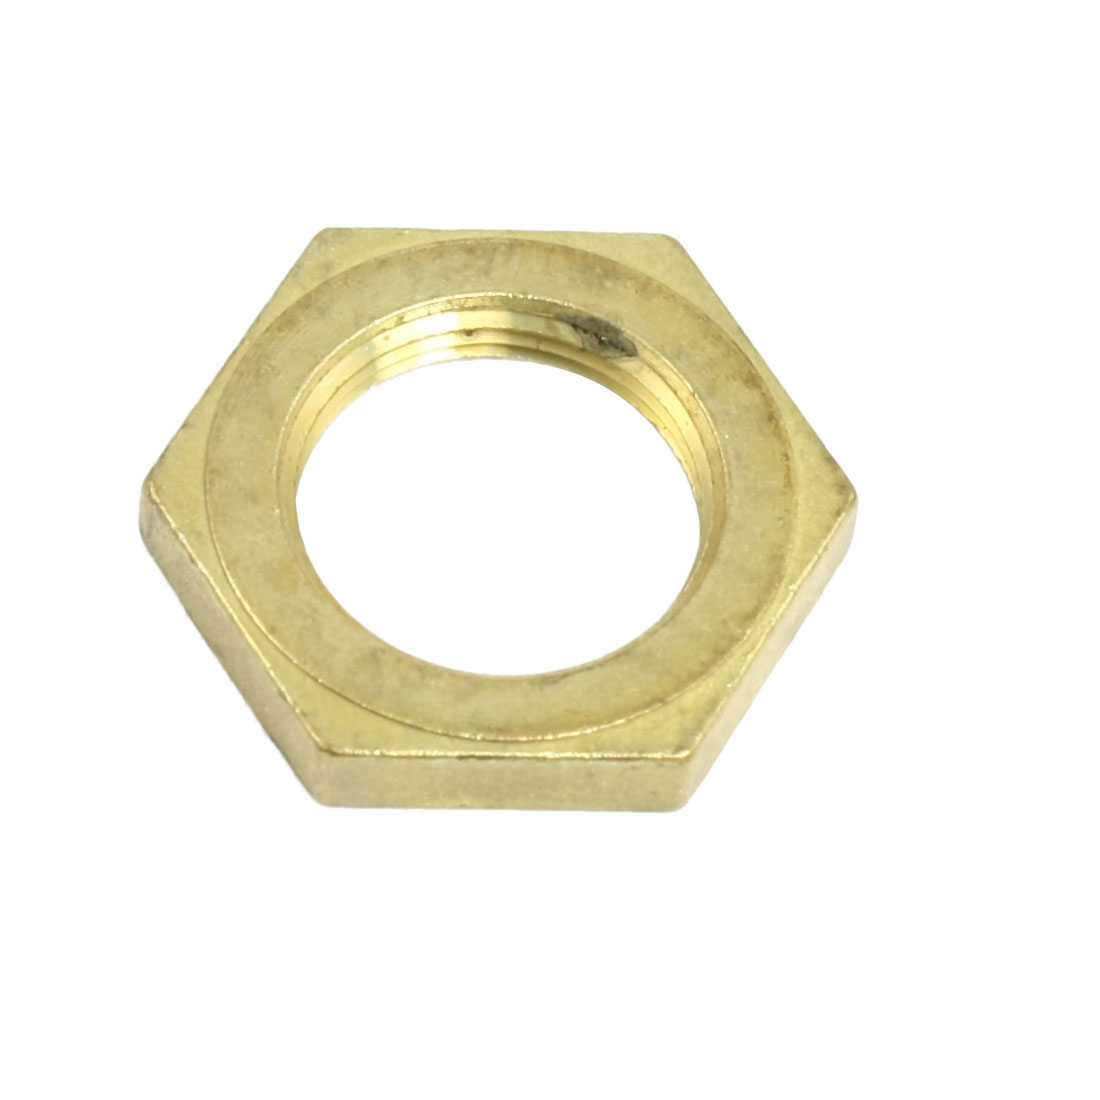 Brass 22mm Diameter Female Thread Hex Head Screw Nut for Washing Machine